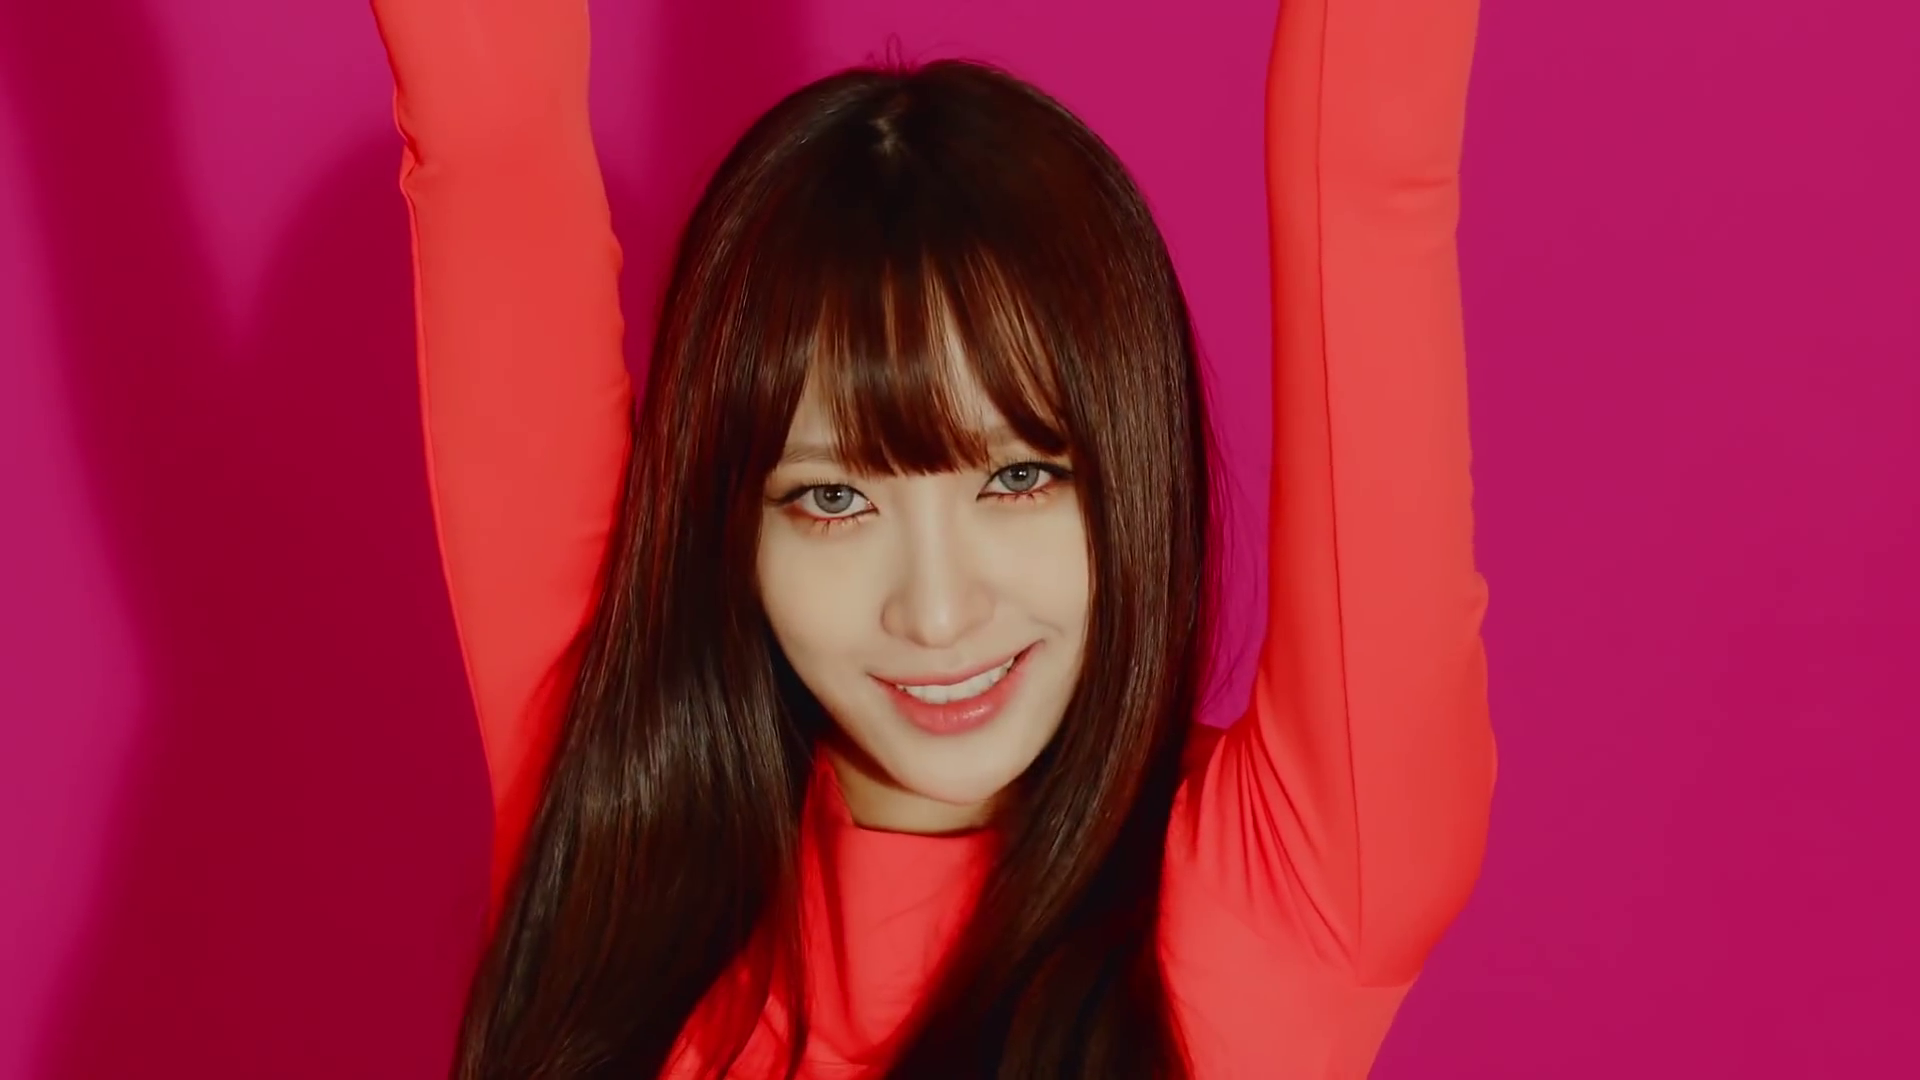 exid-up-and-down-review-hani-solji-junghwa-le-comeback-lyrics-gif-7